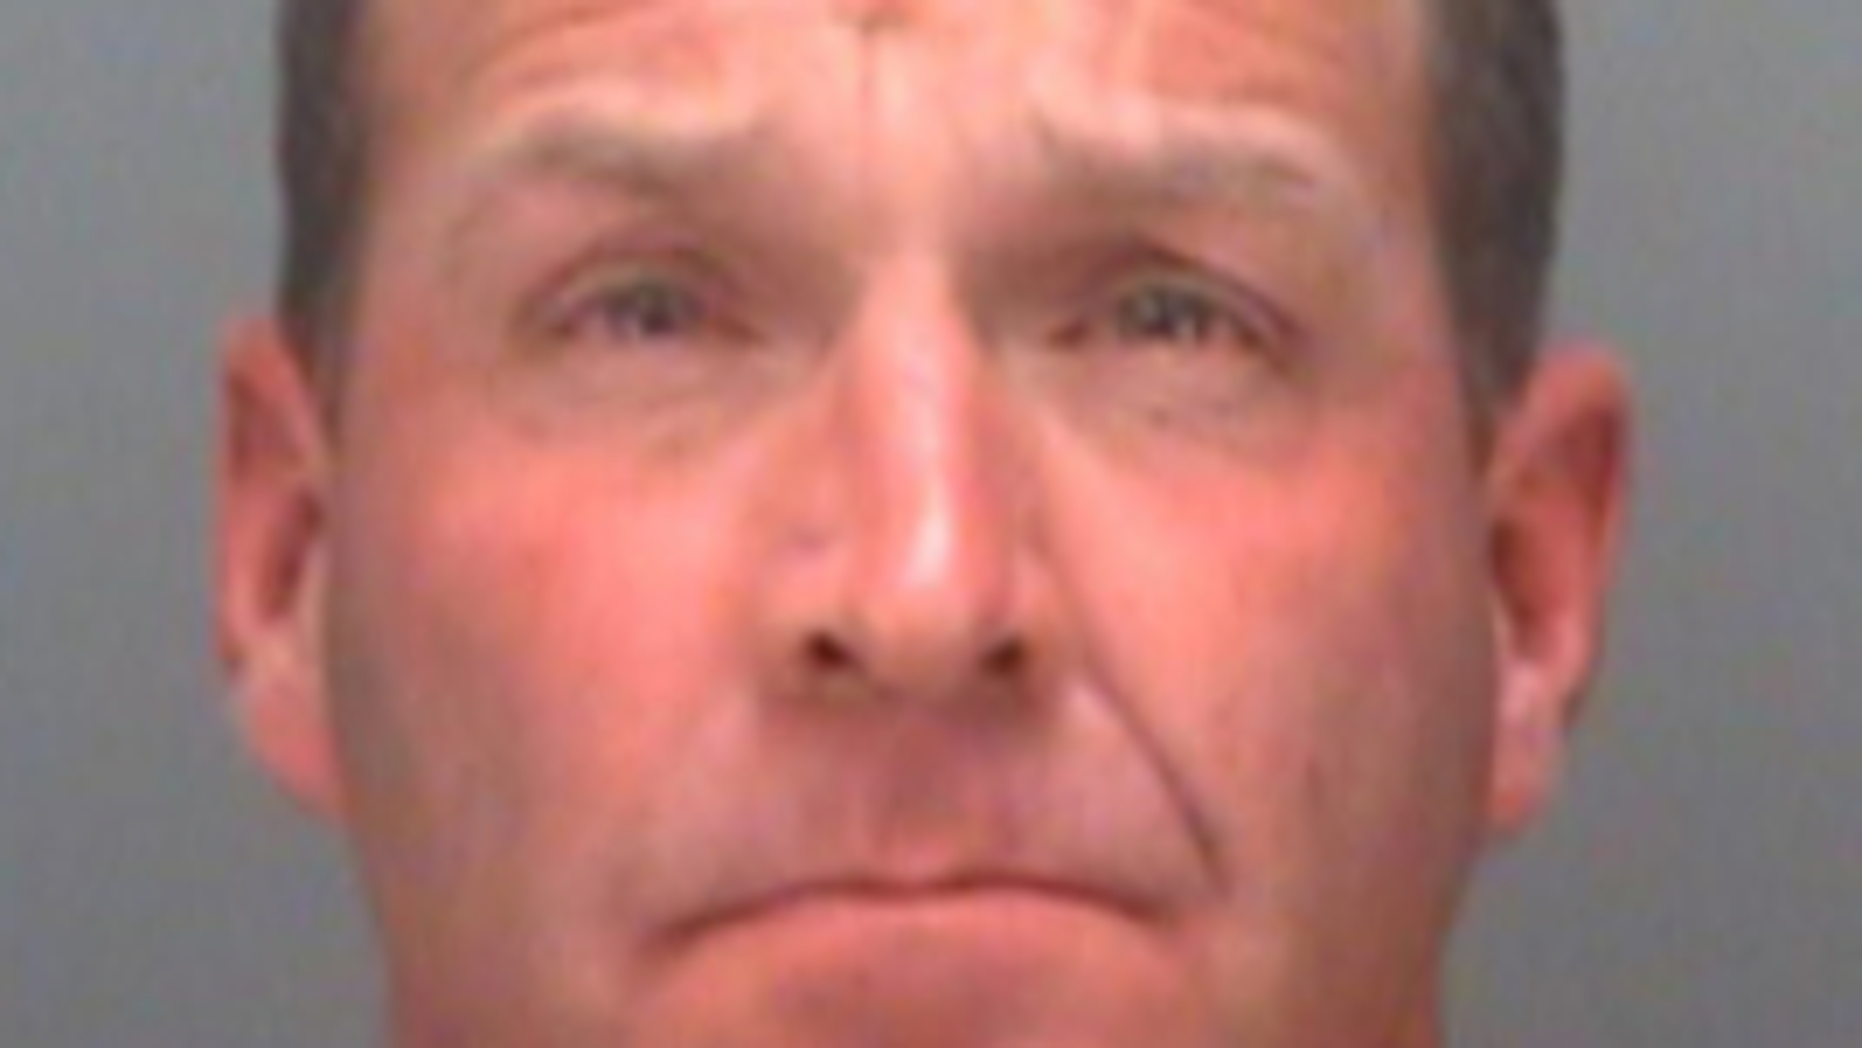 A man is facing charges for allegedly exposing himself twice in one week.